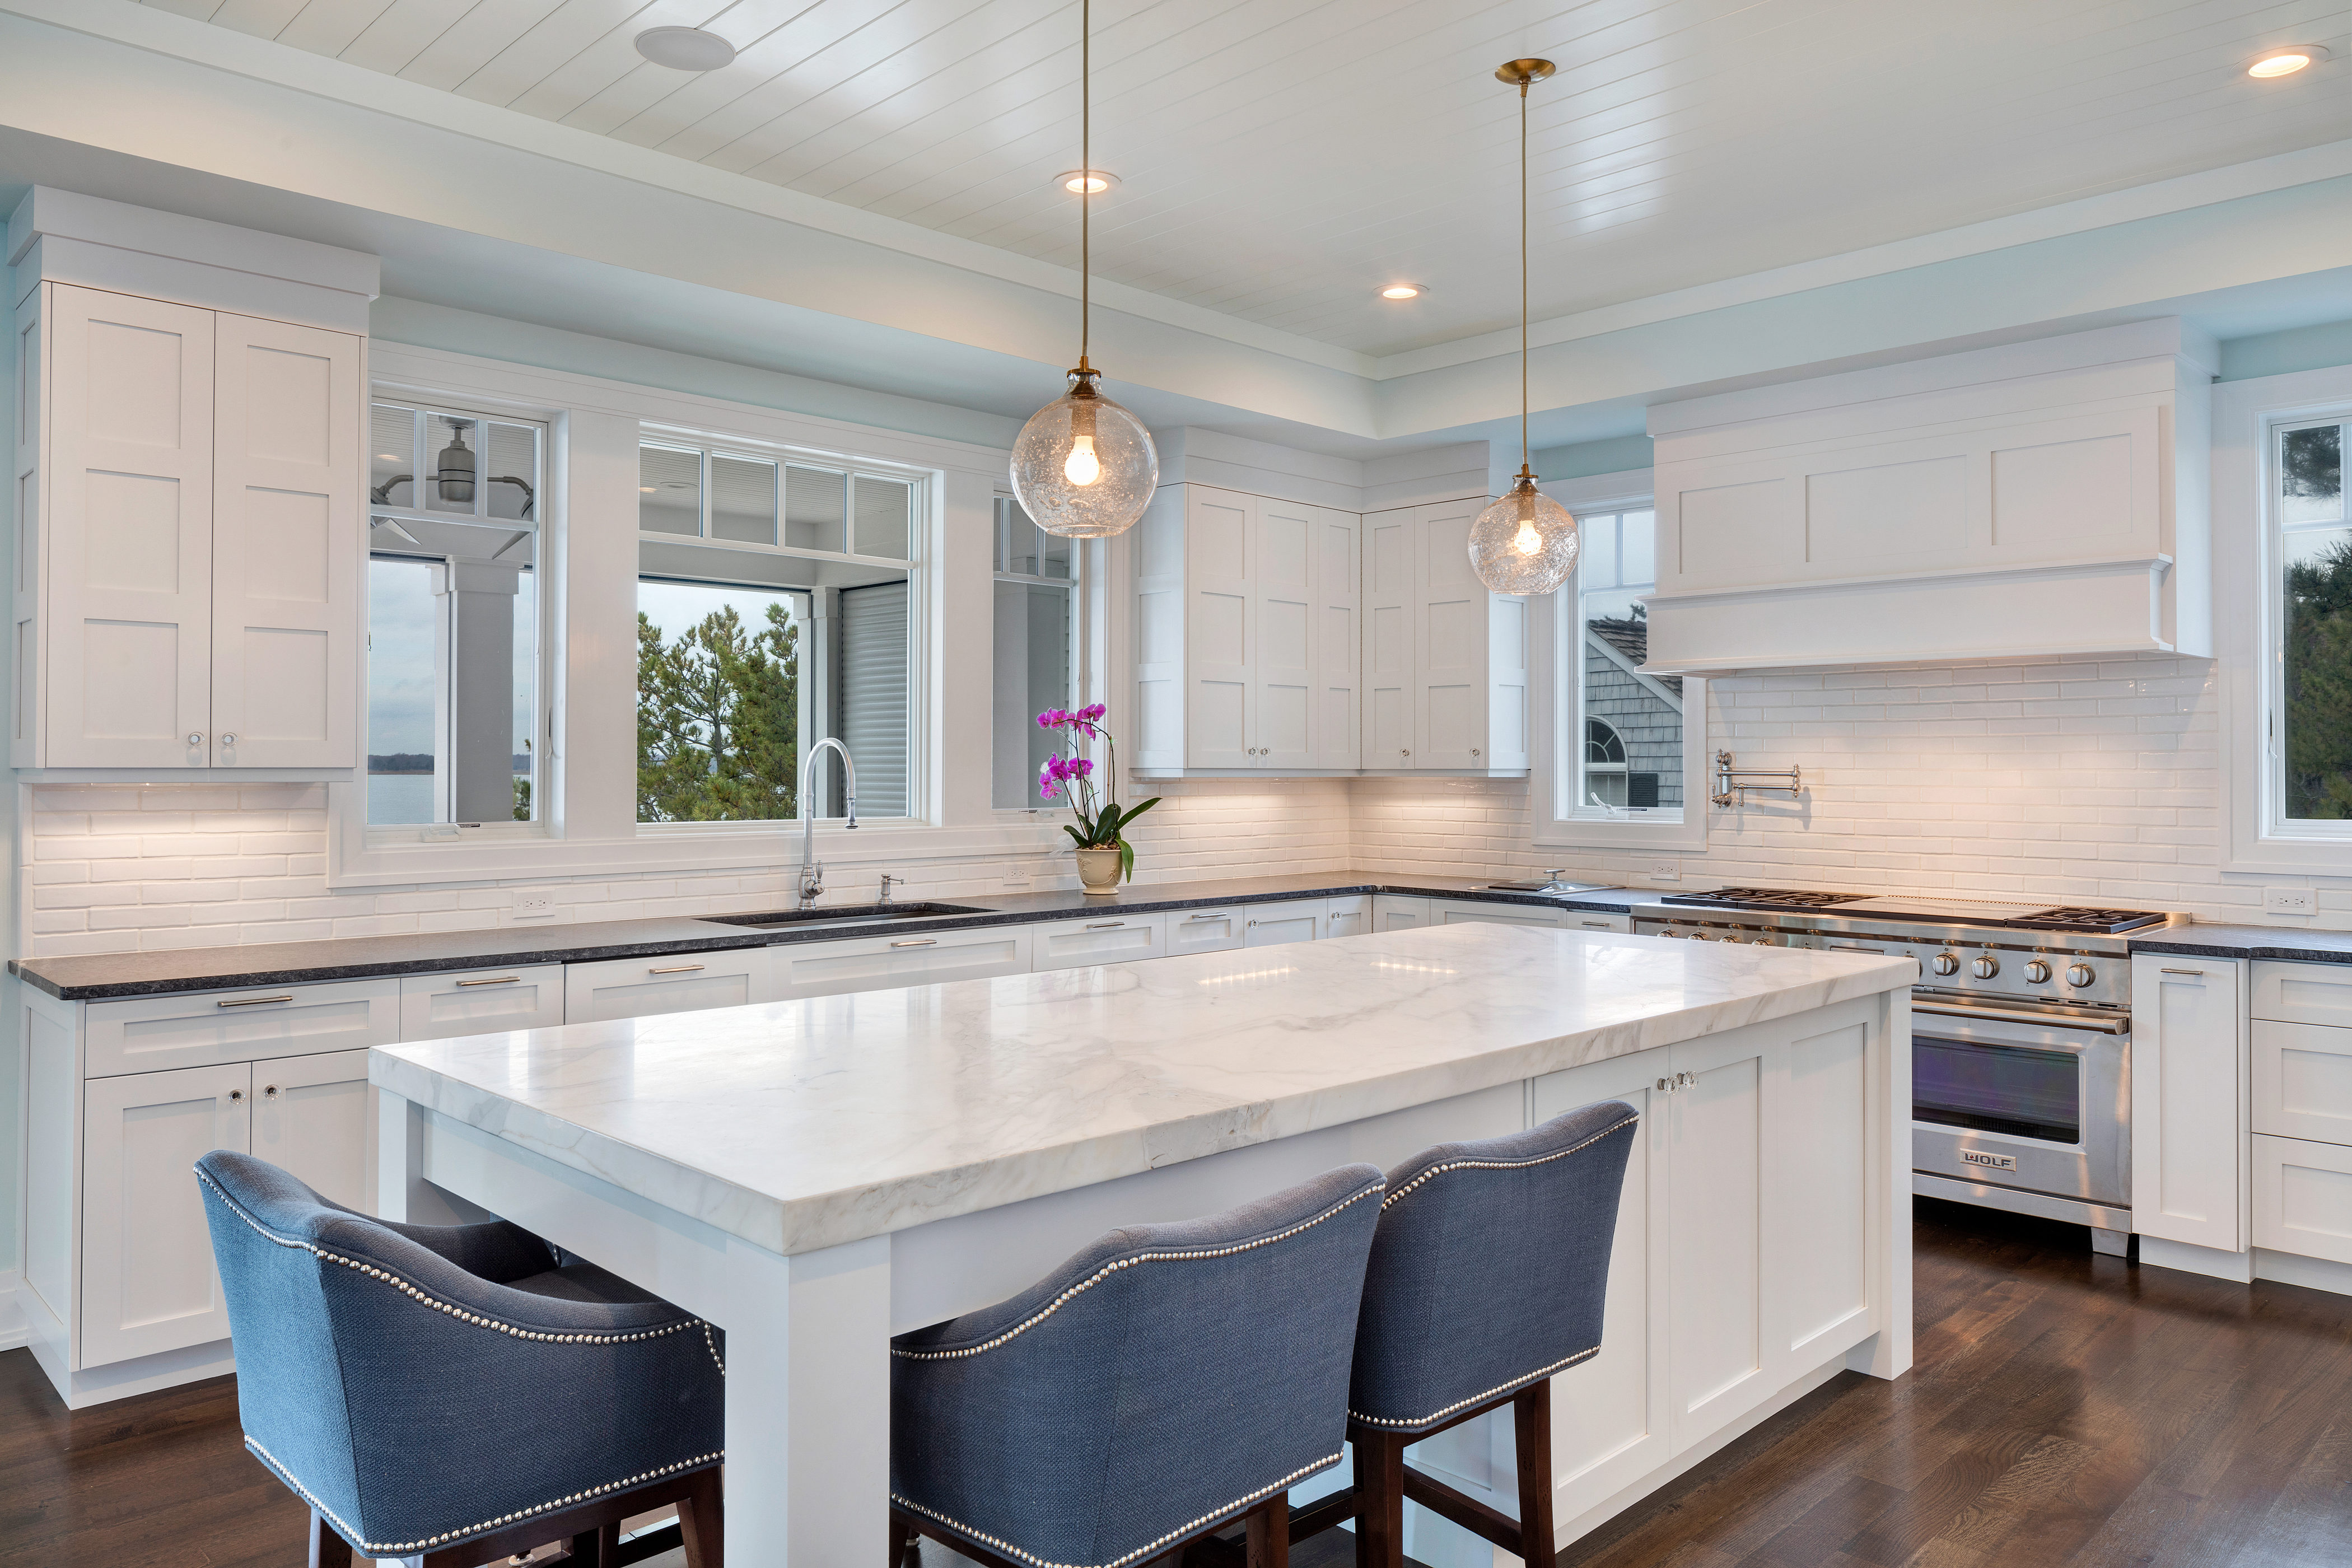 Kitchen Islands & Peninsulas